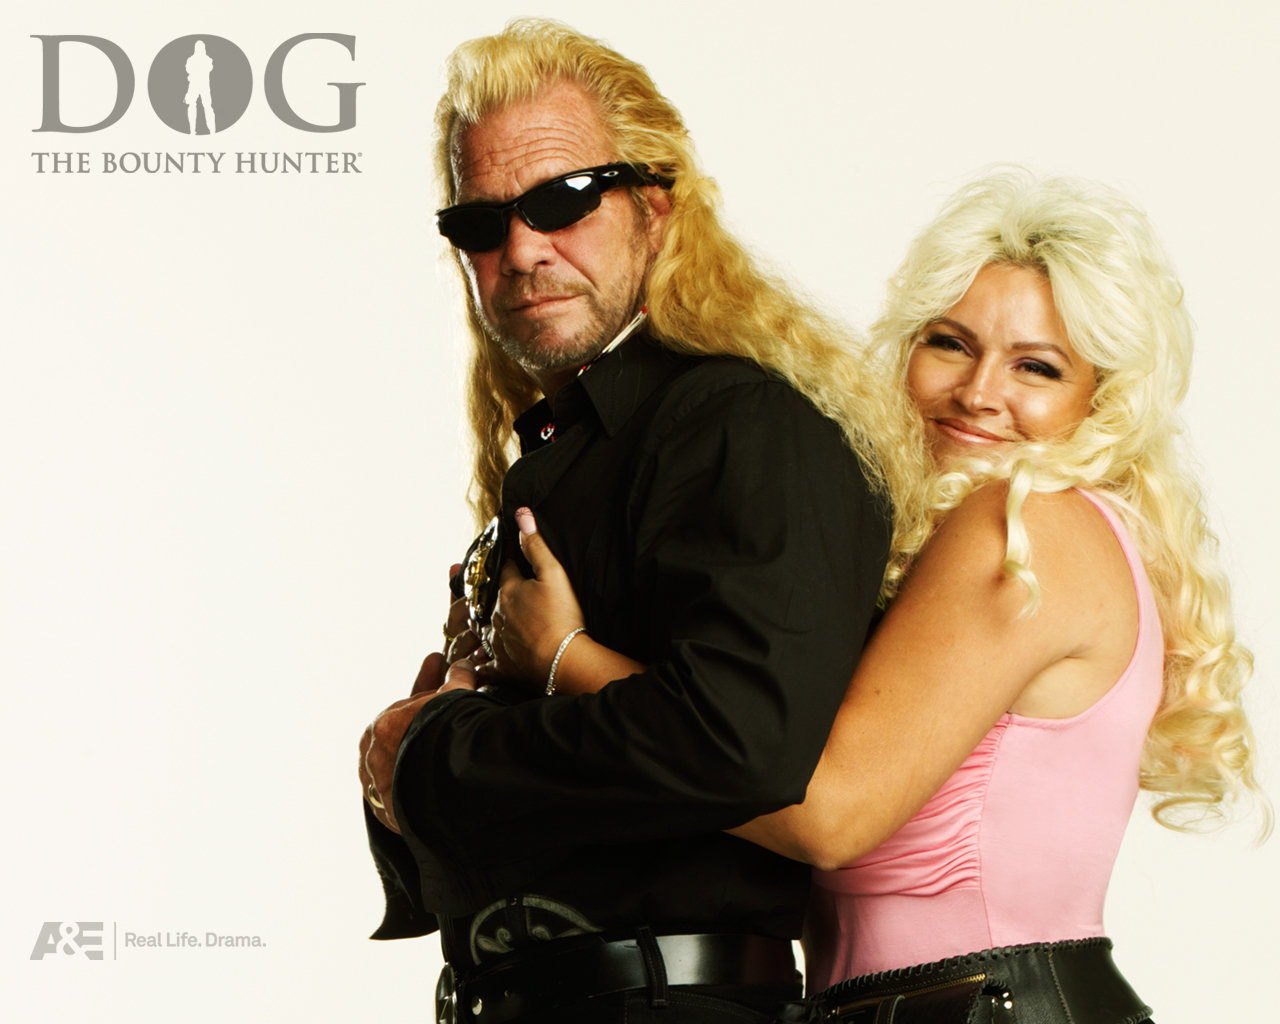 Dog The Bounty Hunter Images Dog And Beth Hd Wallpaper And  sc 1 st  Meningrey & Dog The Bounty Hunter And Beth Costume - Meningrey